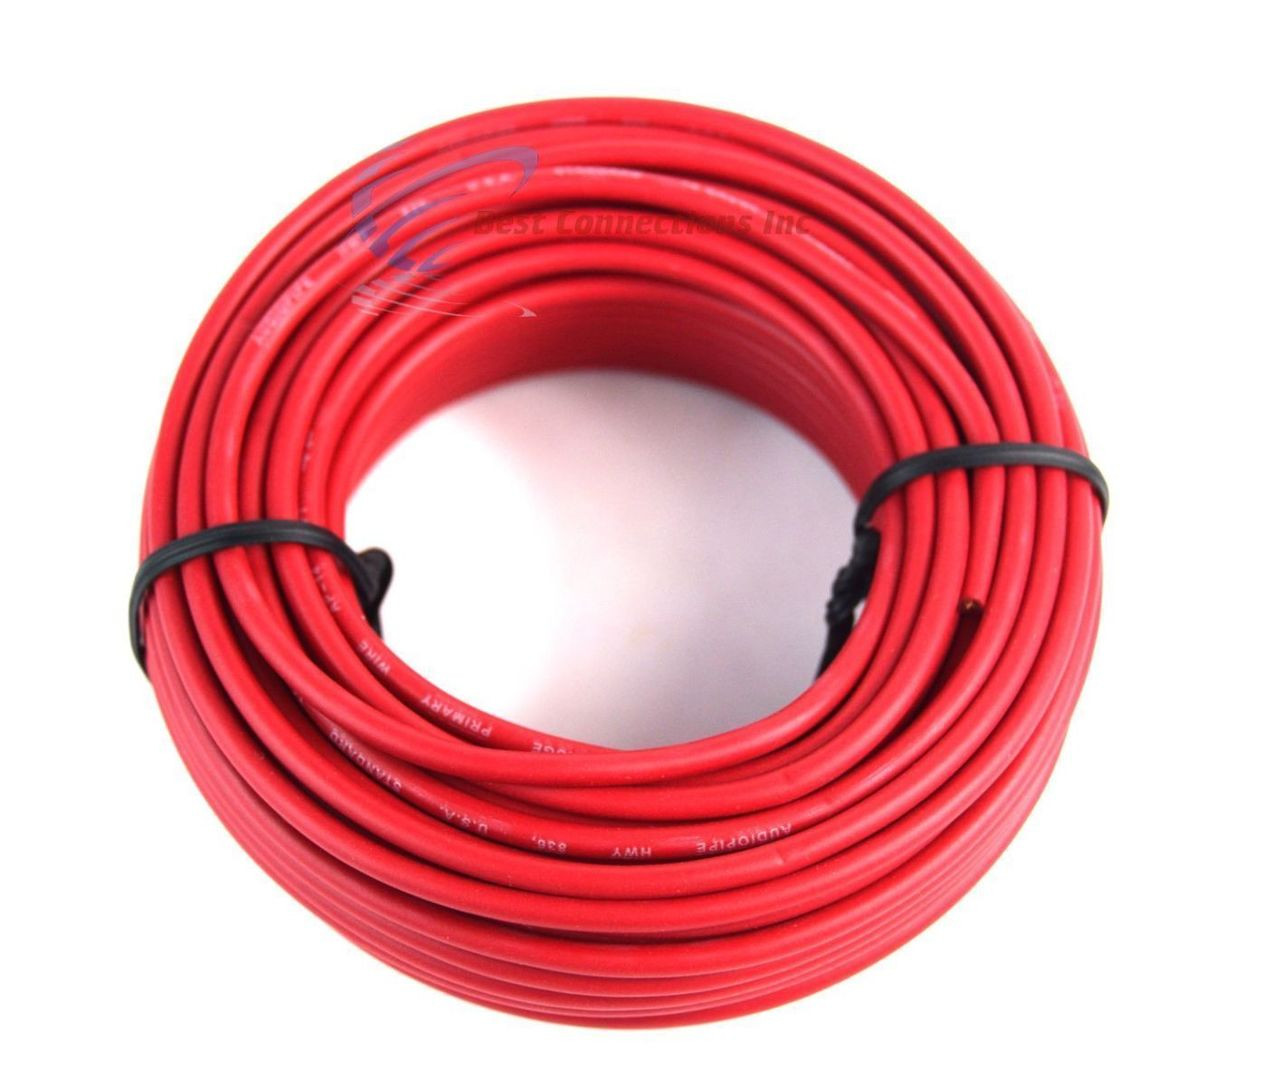 14 GAUGE WIRE RED & BLACK POWER GROUND 50 FT EACH PRIMARY STRANDED ...